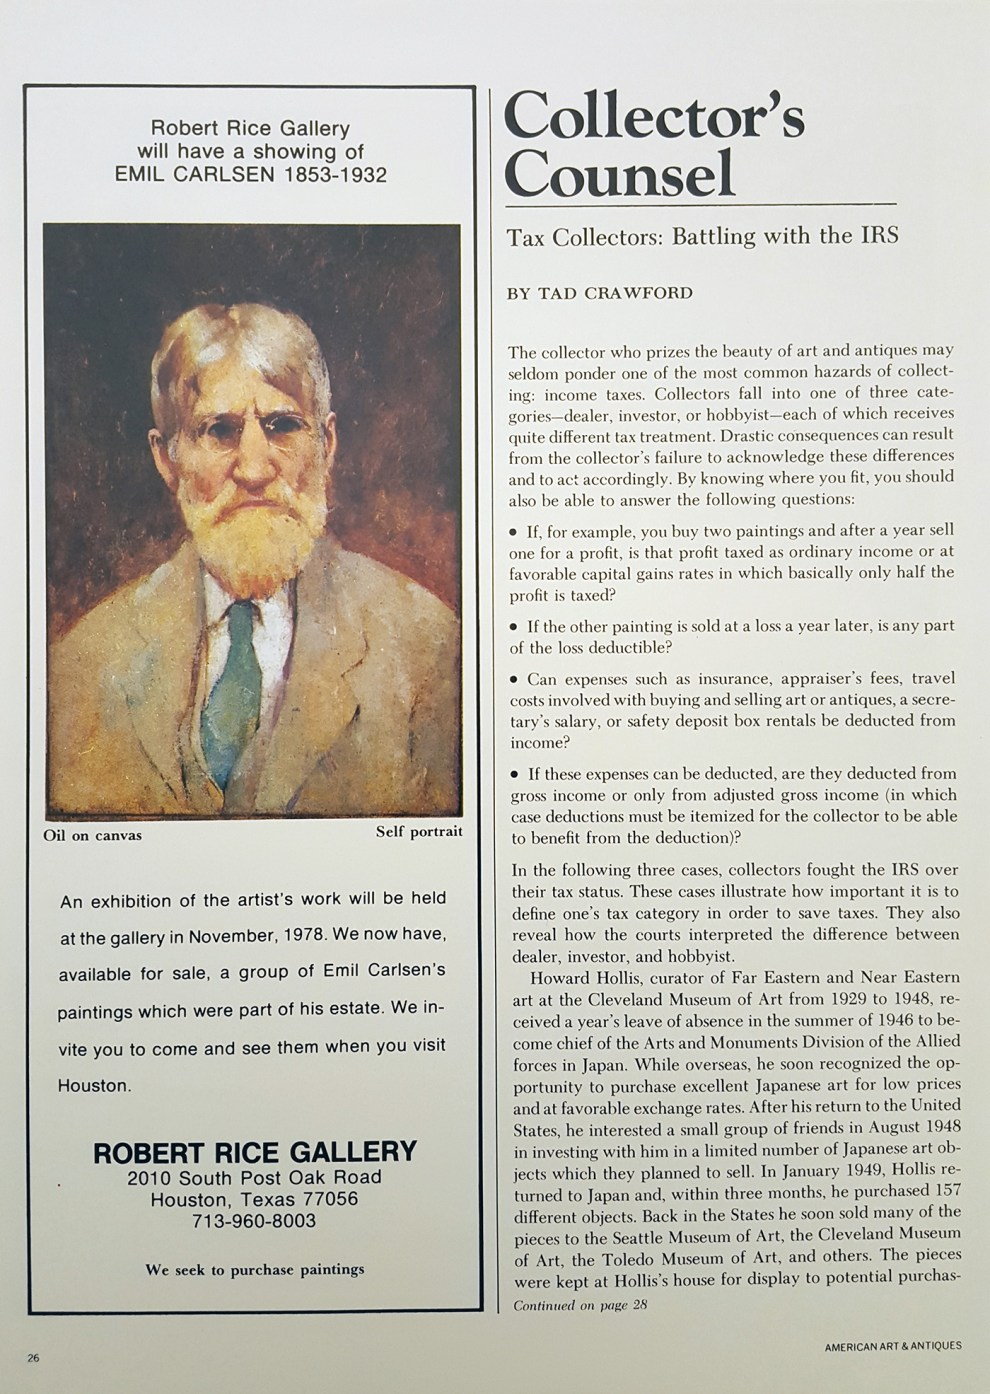 """Emil Carlsen Ad for Robert Rice Gallery"", Houston, TX, American Art & Antiques, c.1978, page 26, illustrated: color"